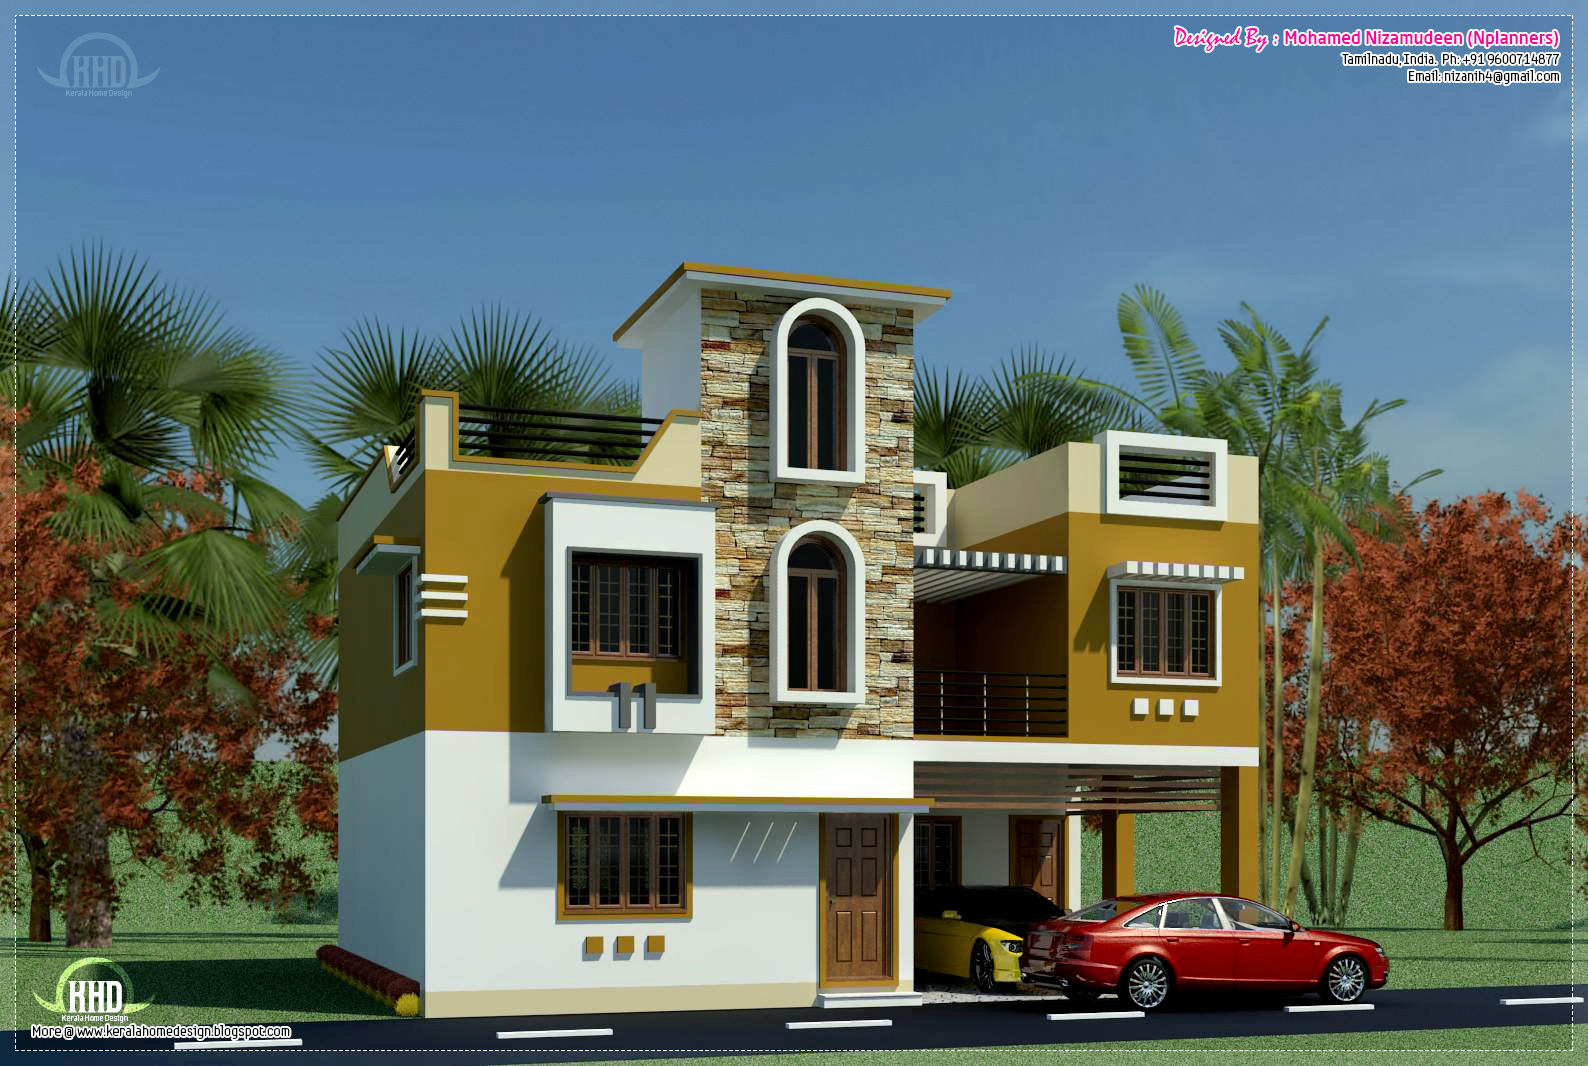 Siddu buzz online kerala home design for Tamilnadu home design photos